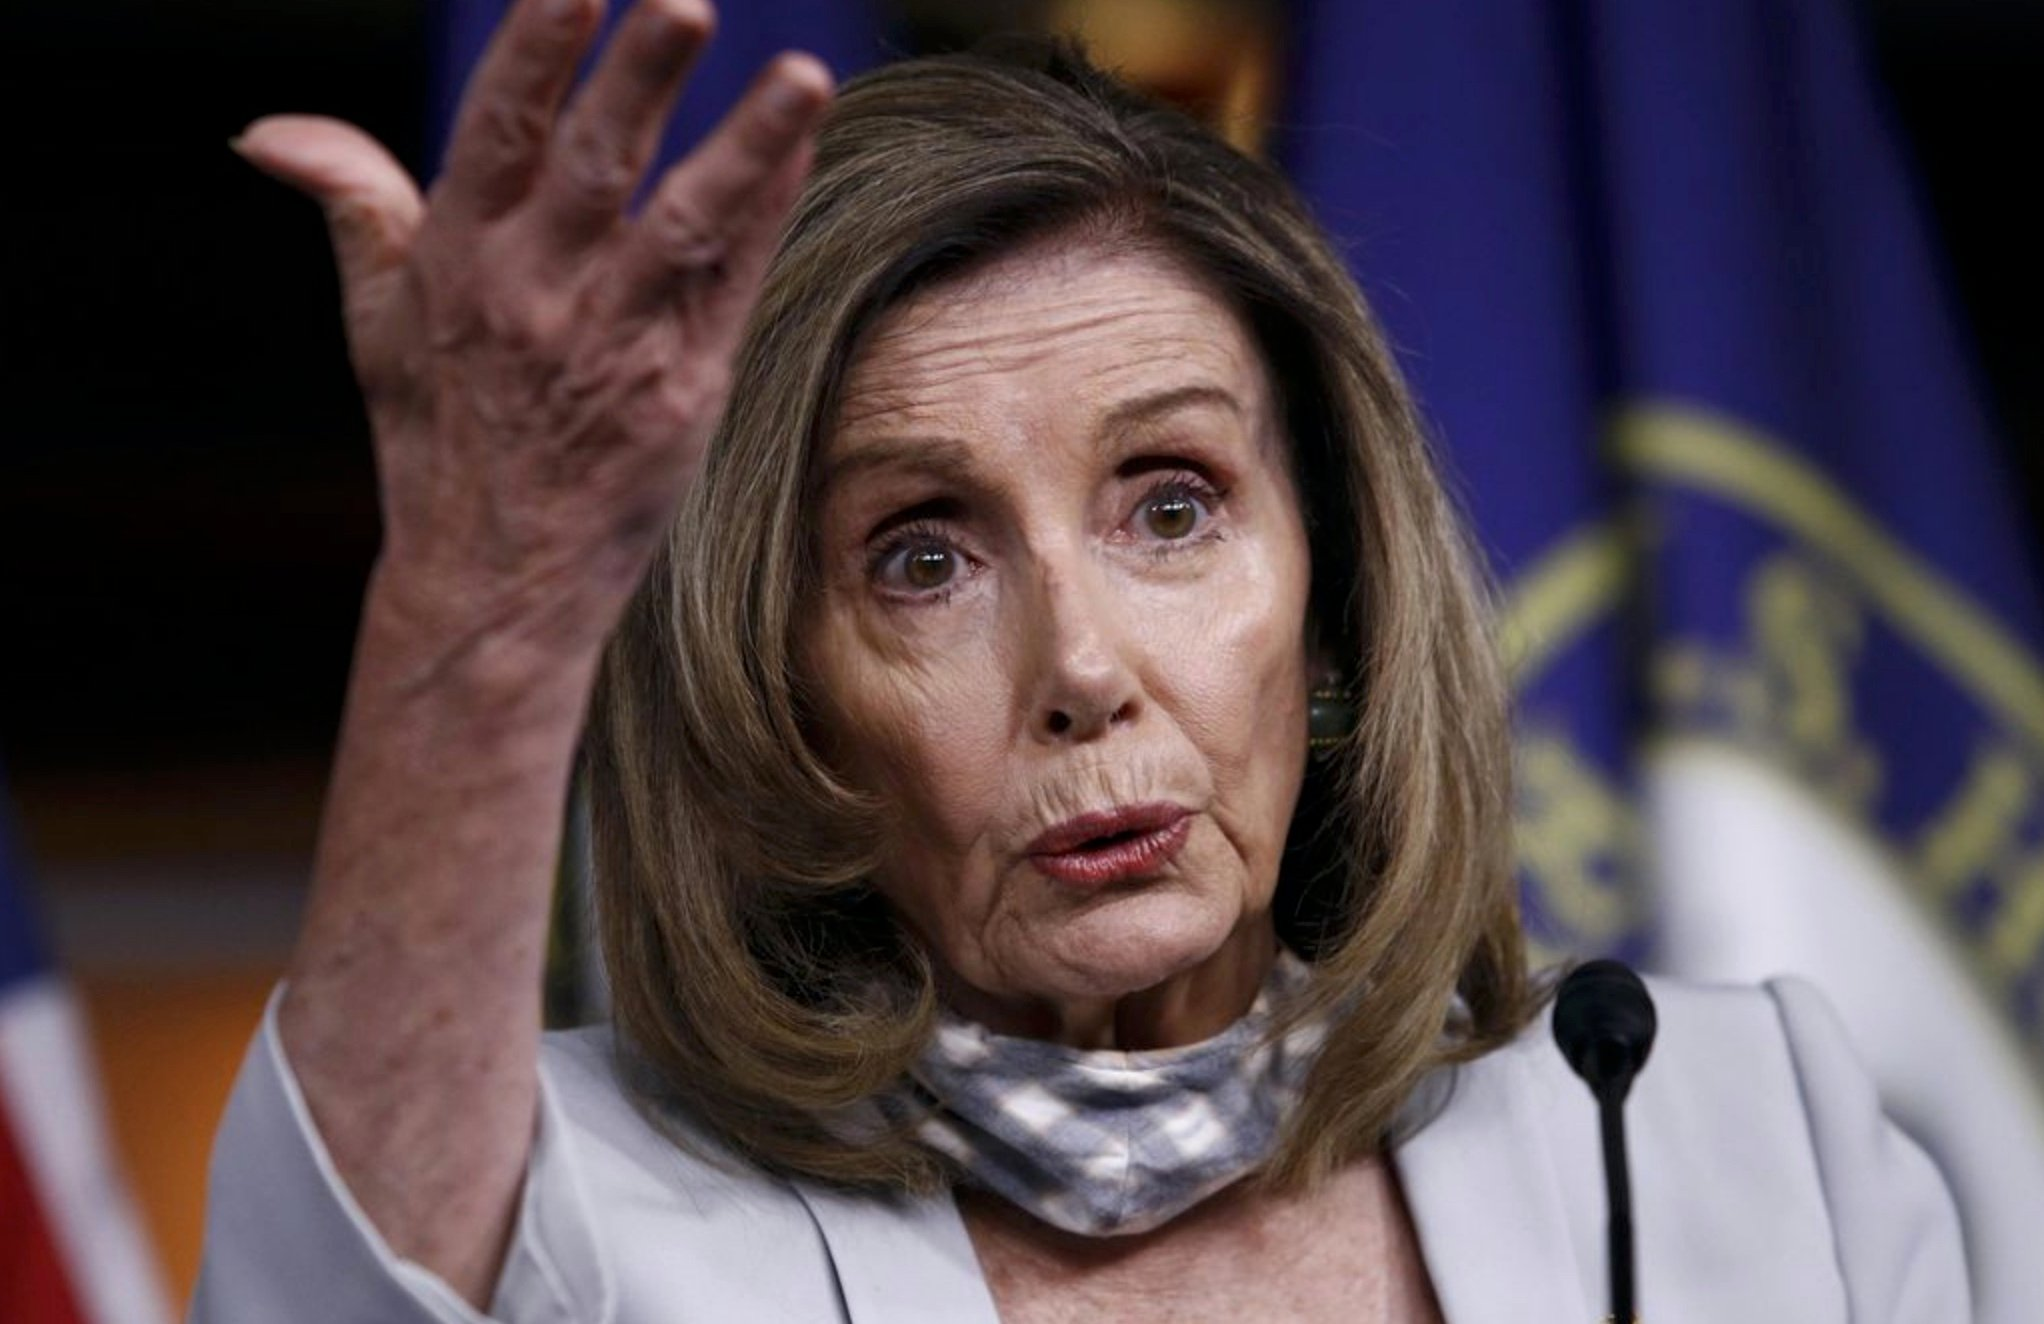 Opinion: Pelosi Will Go Down In History As The Epitome Of Hatred And Retaliatory Behavior